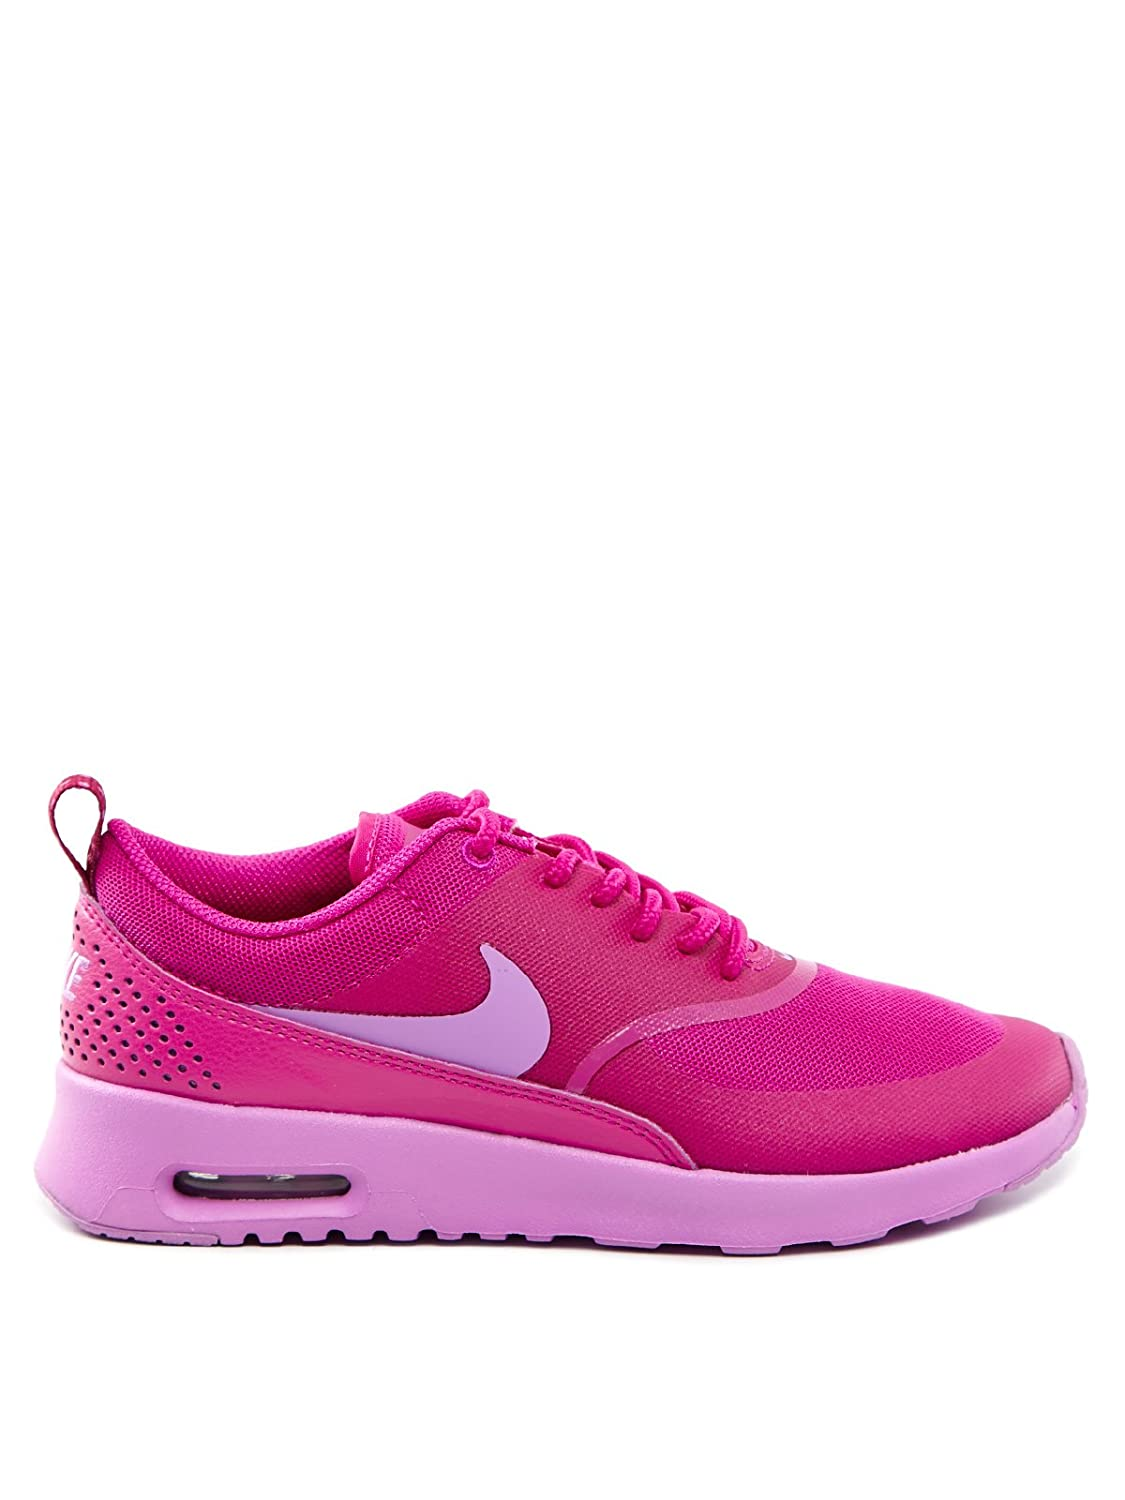 NIKE Air Air Max Thea, Baskets Baskets Violet Femme Violet bc92dbe - latesttechnology.space